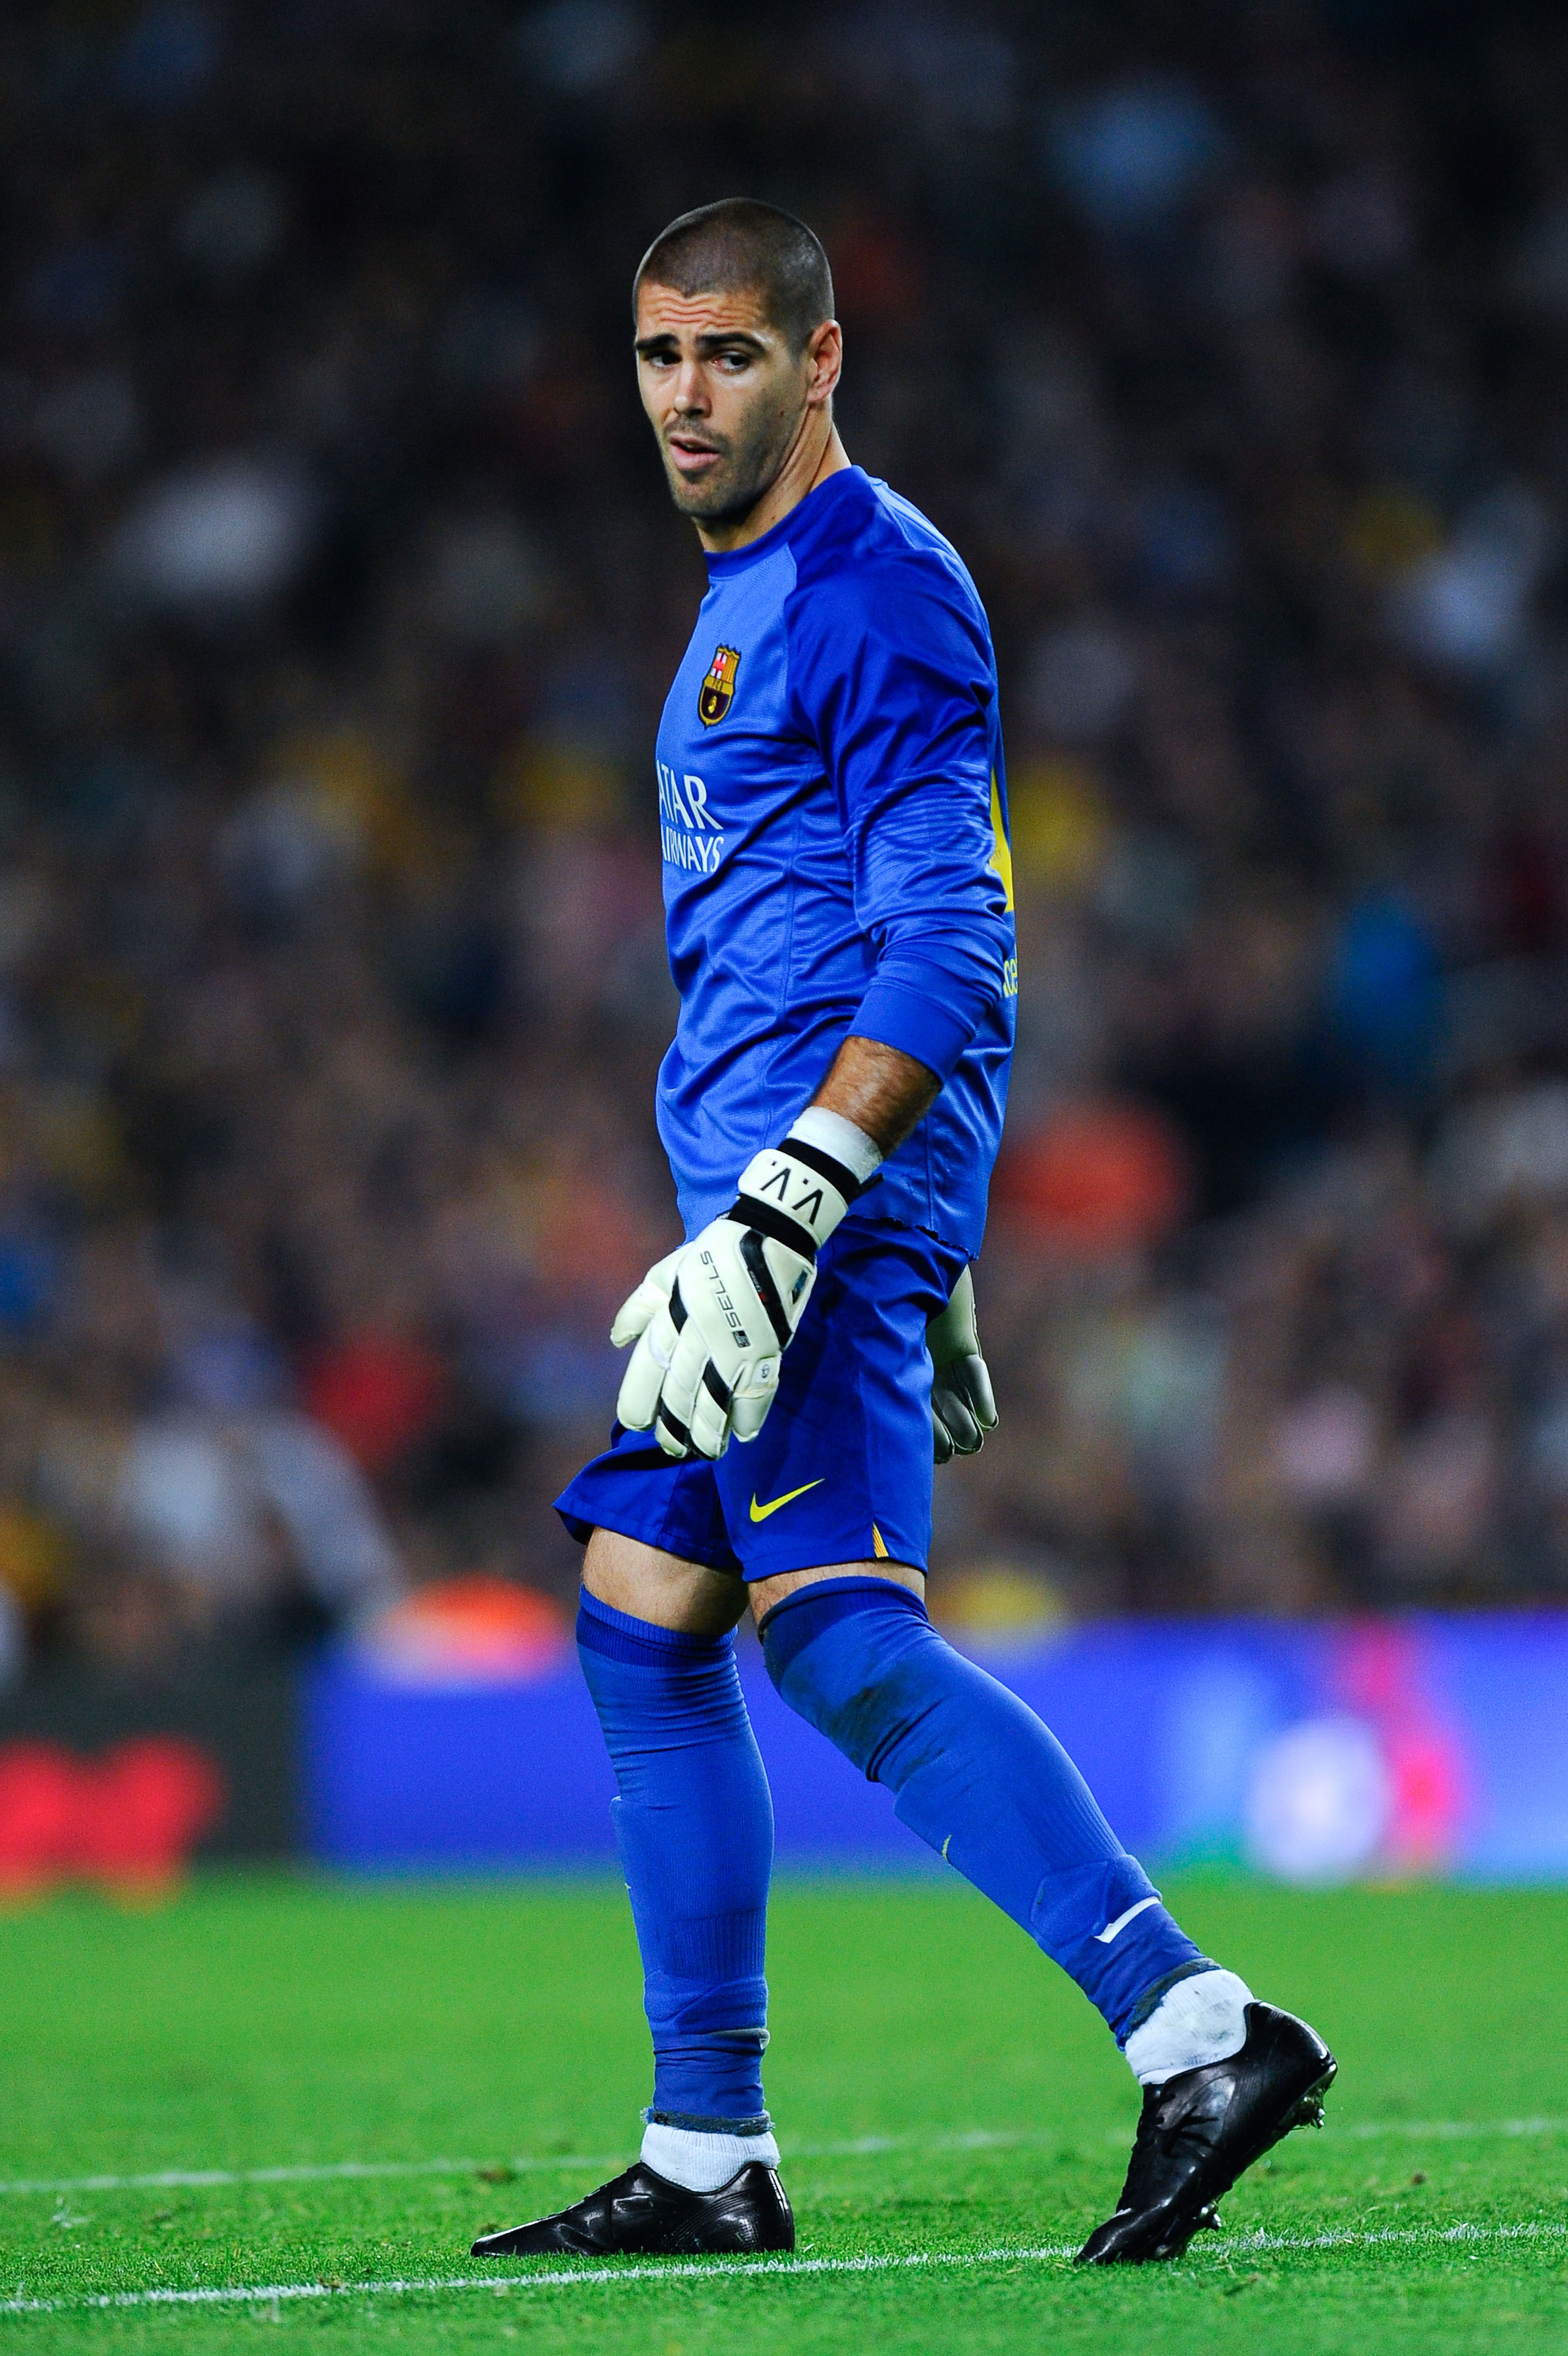 Victor Valdés injury: Goalkeeper reportedly has a torn calf muscle